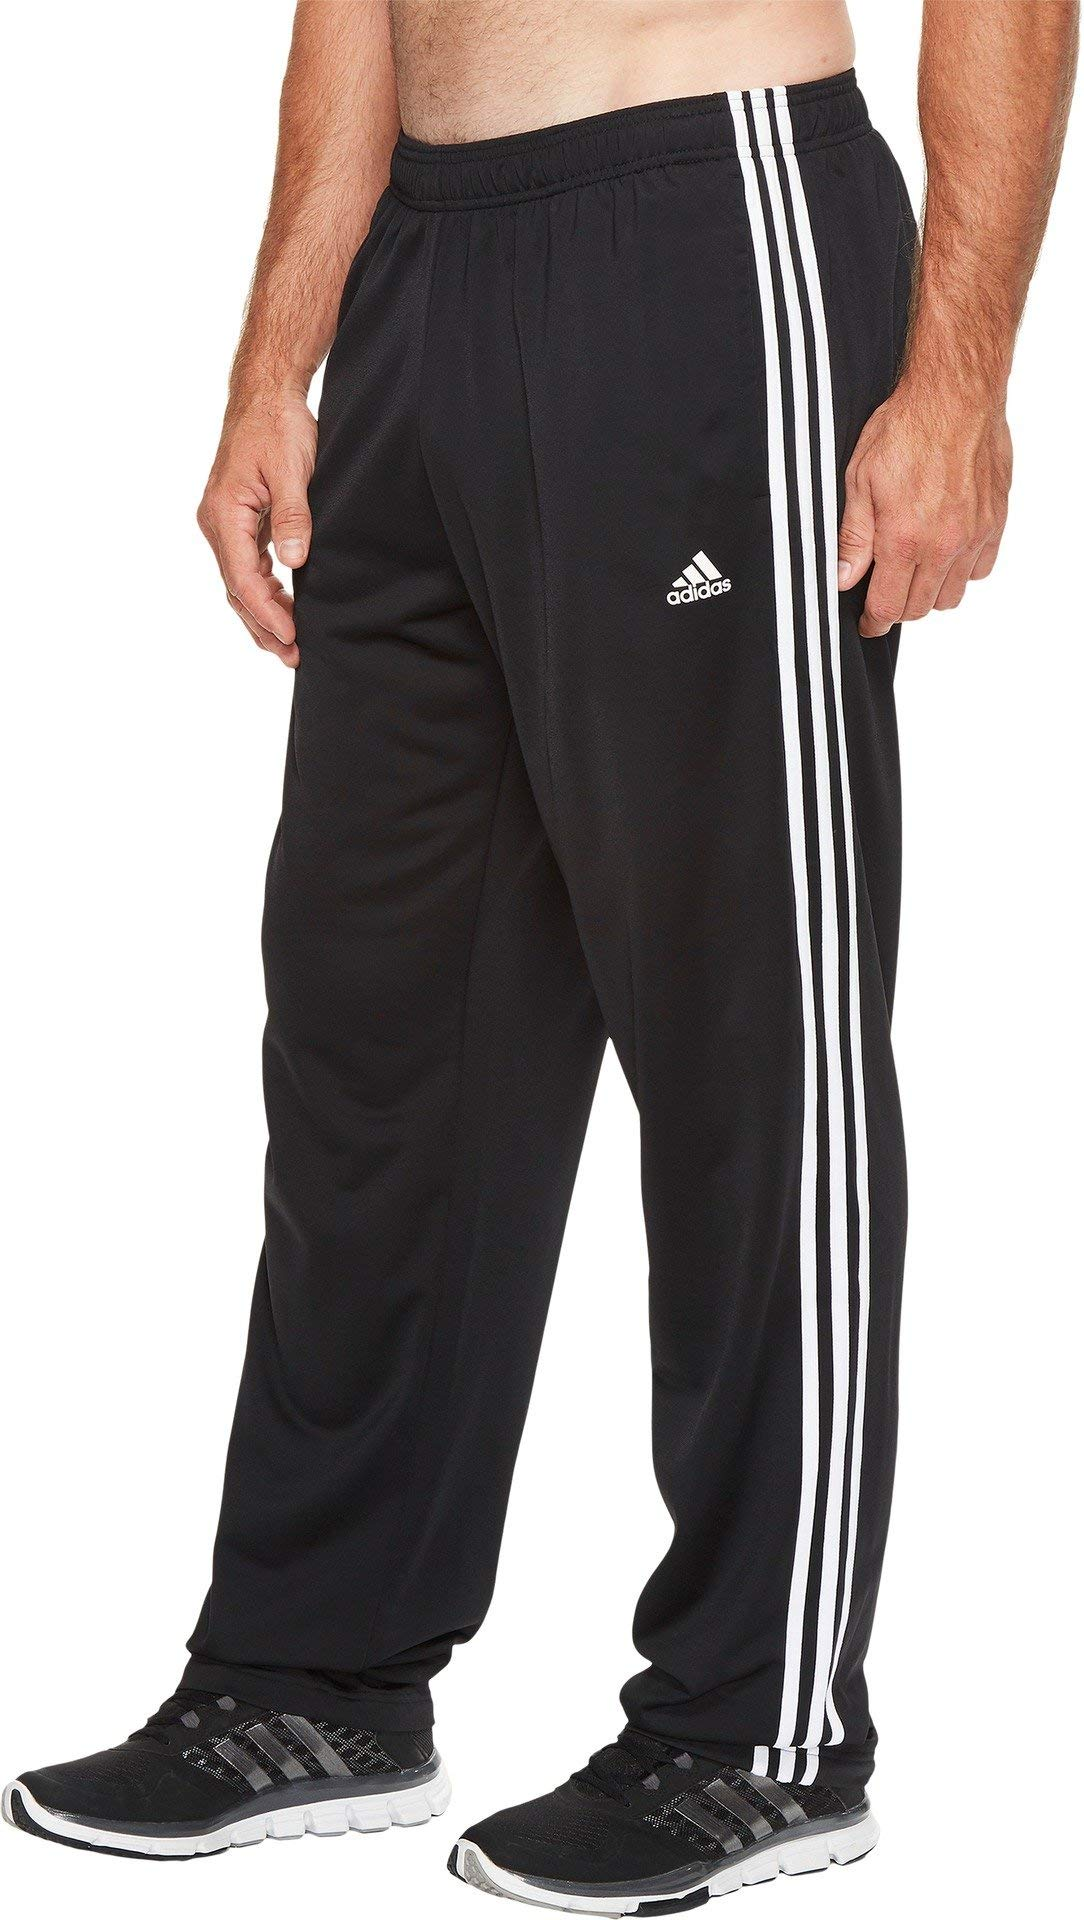 adidas Men's Athletics Essential Tricot 3 Stripe Tapered Pant